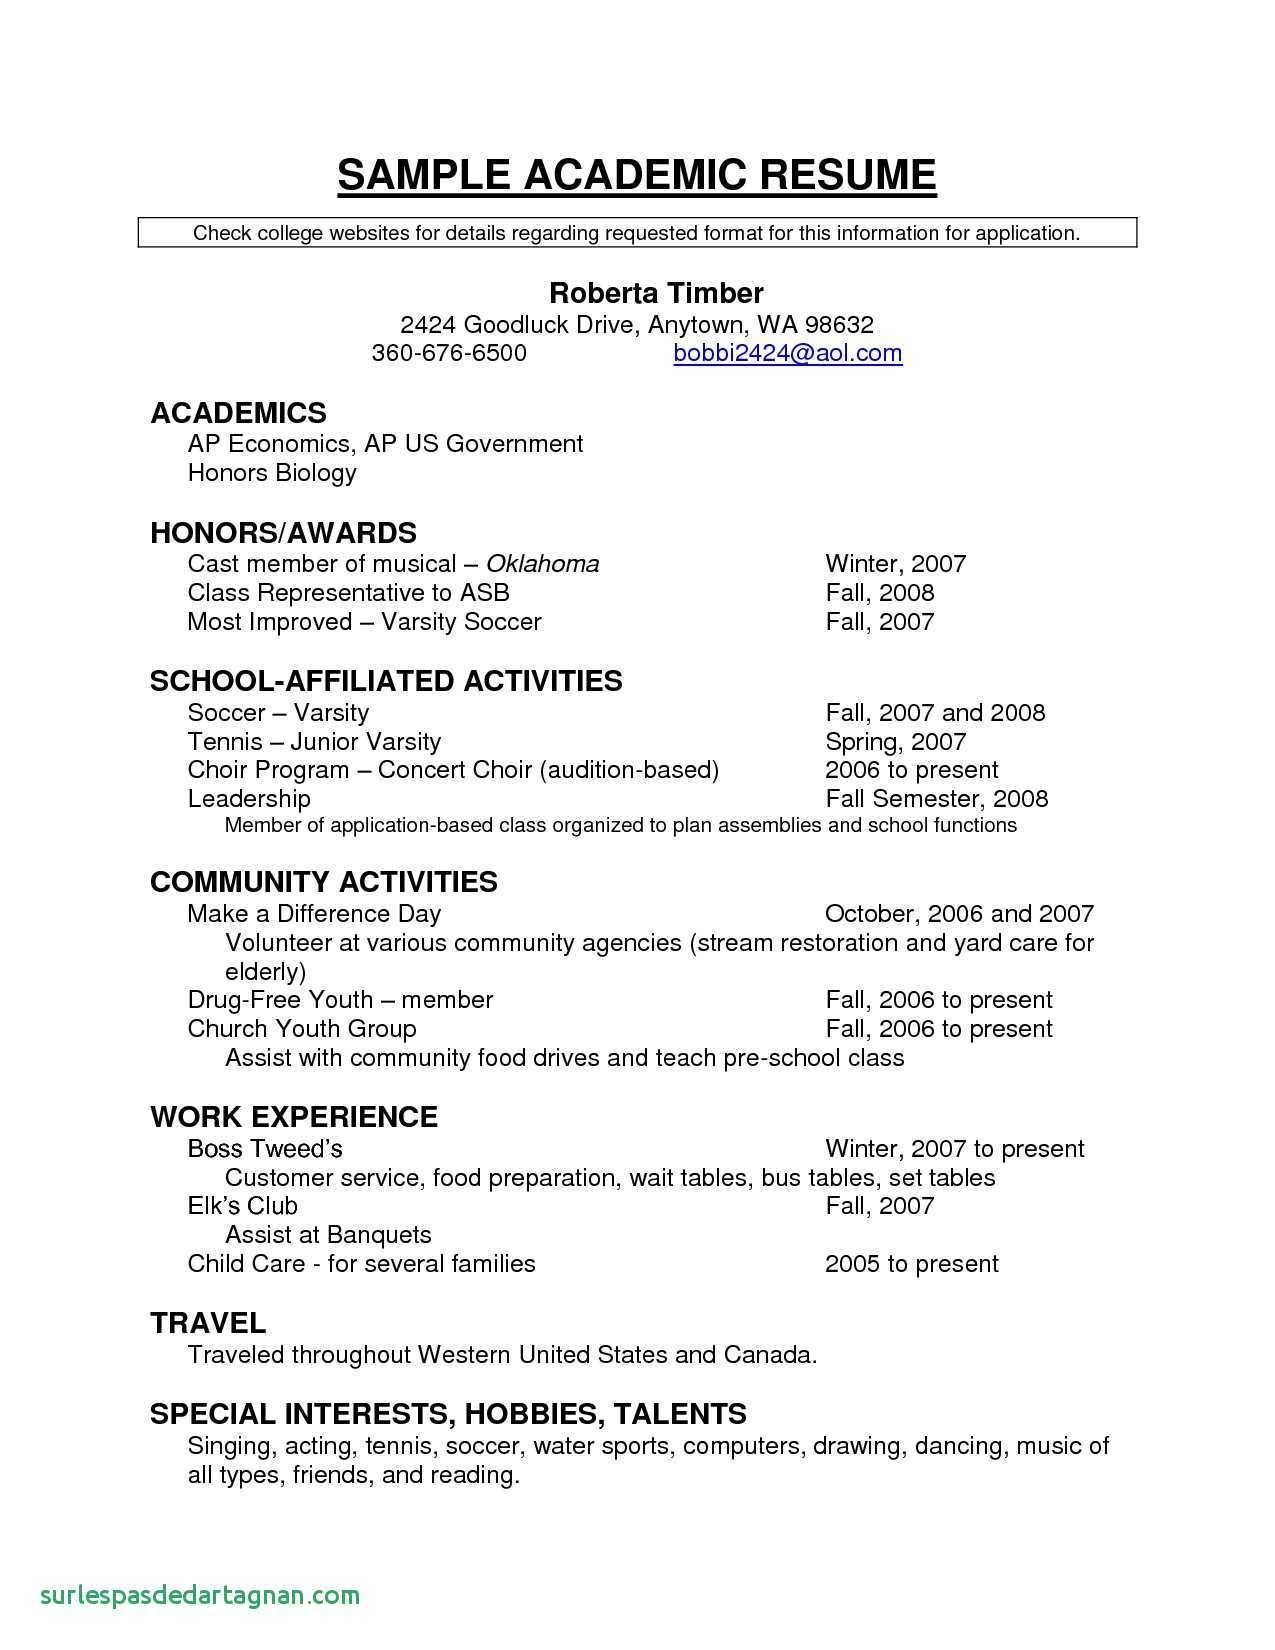 Medical Billing Resume Example - Resume Examples for Highschool Students Fresh Medical Biller Resume